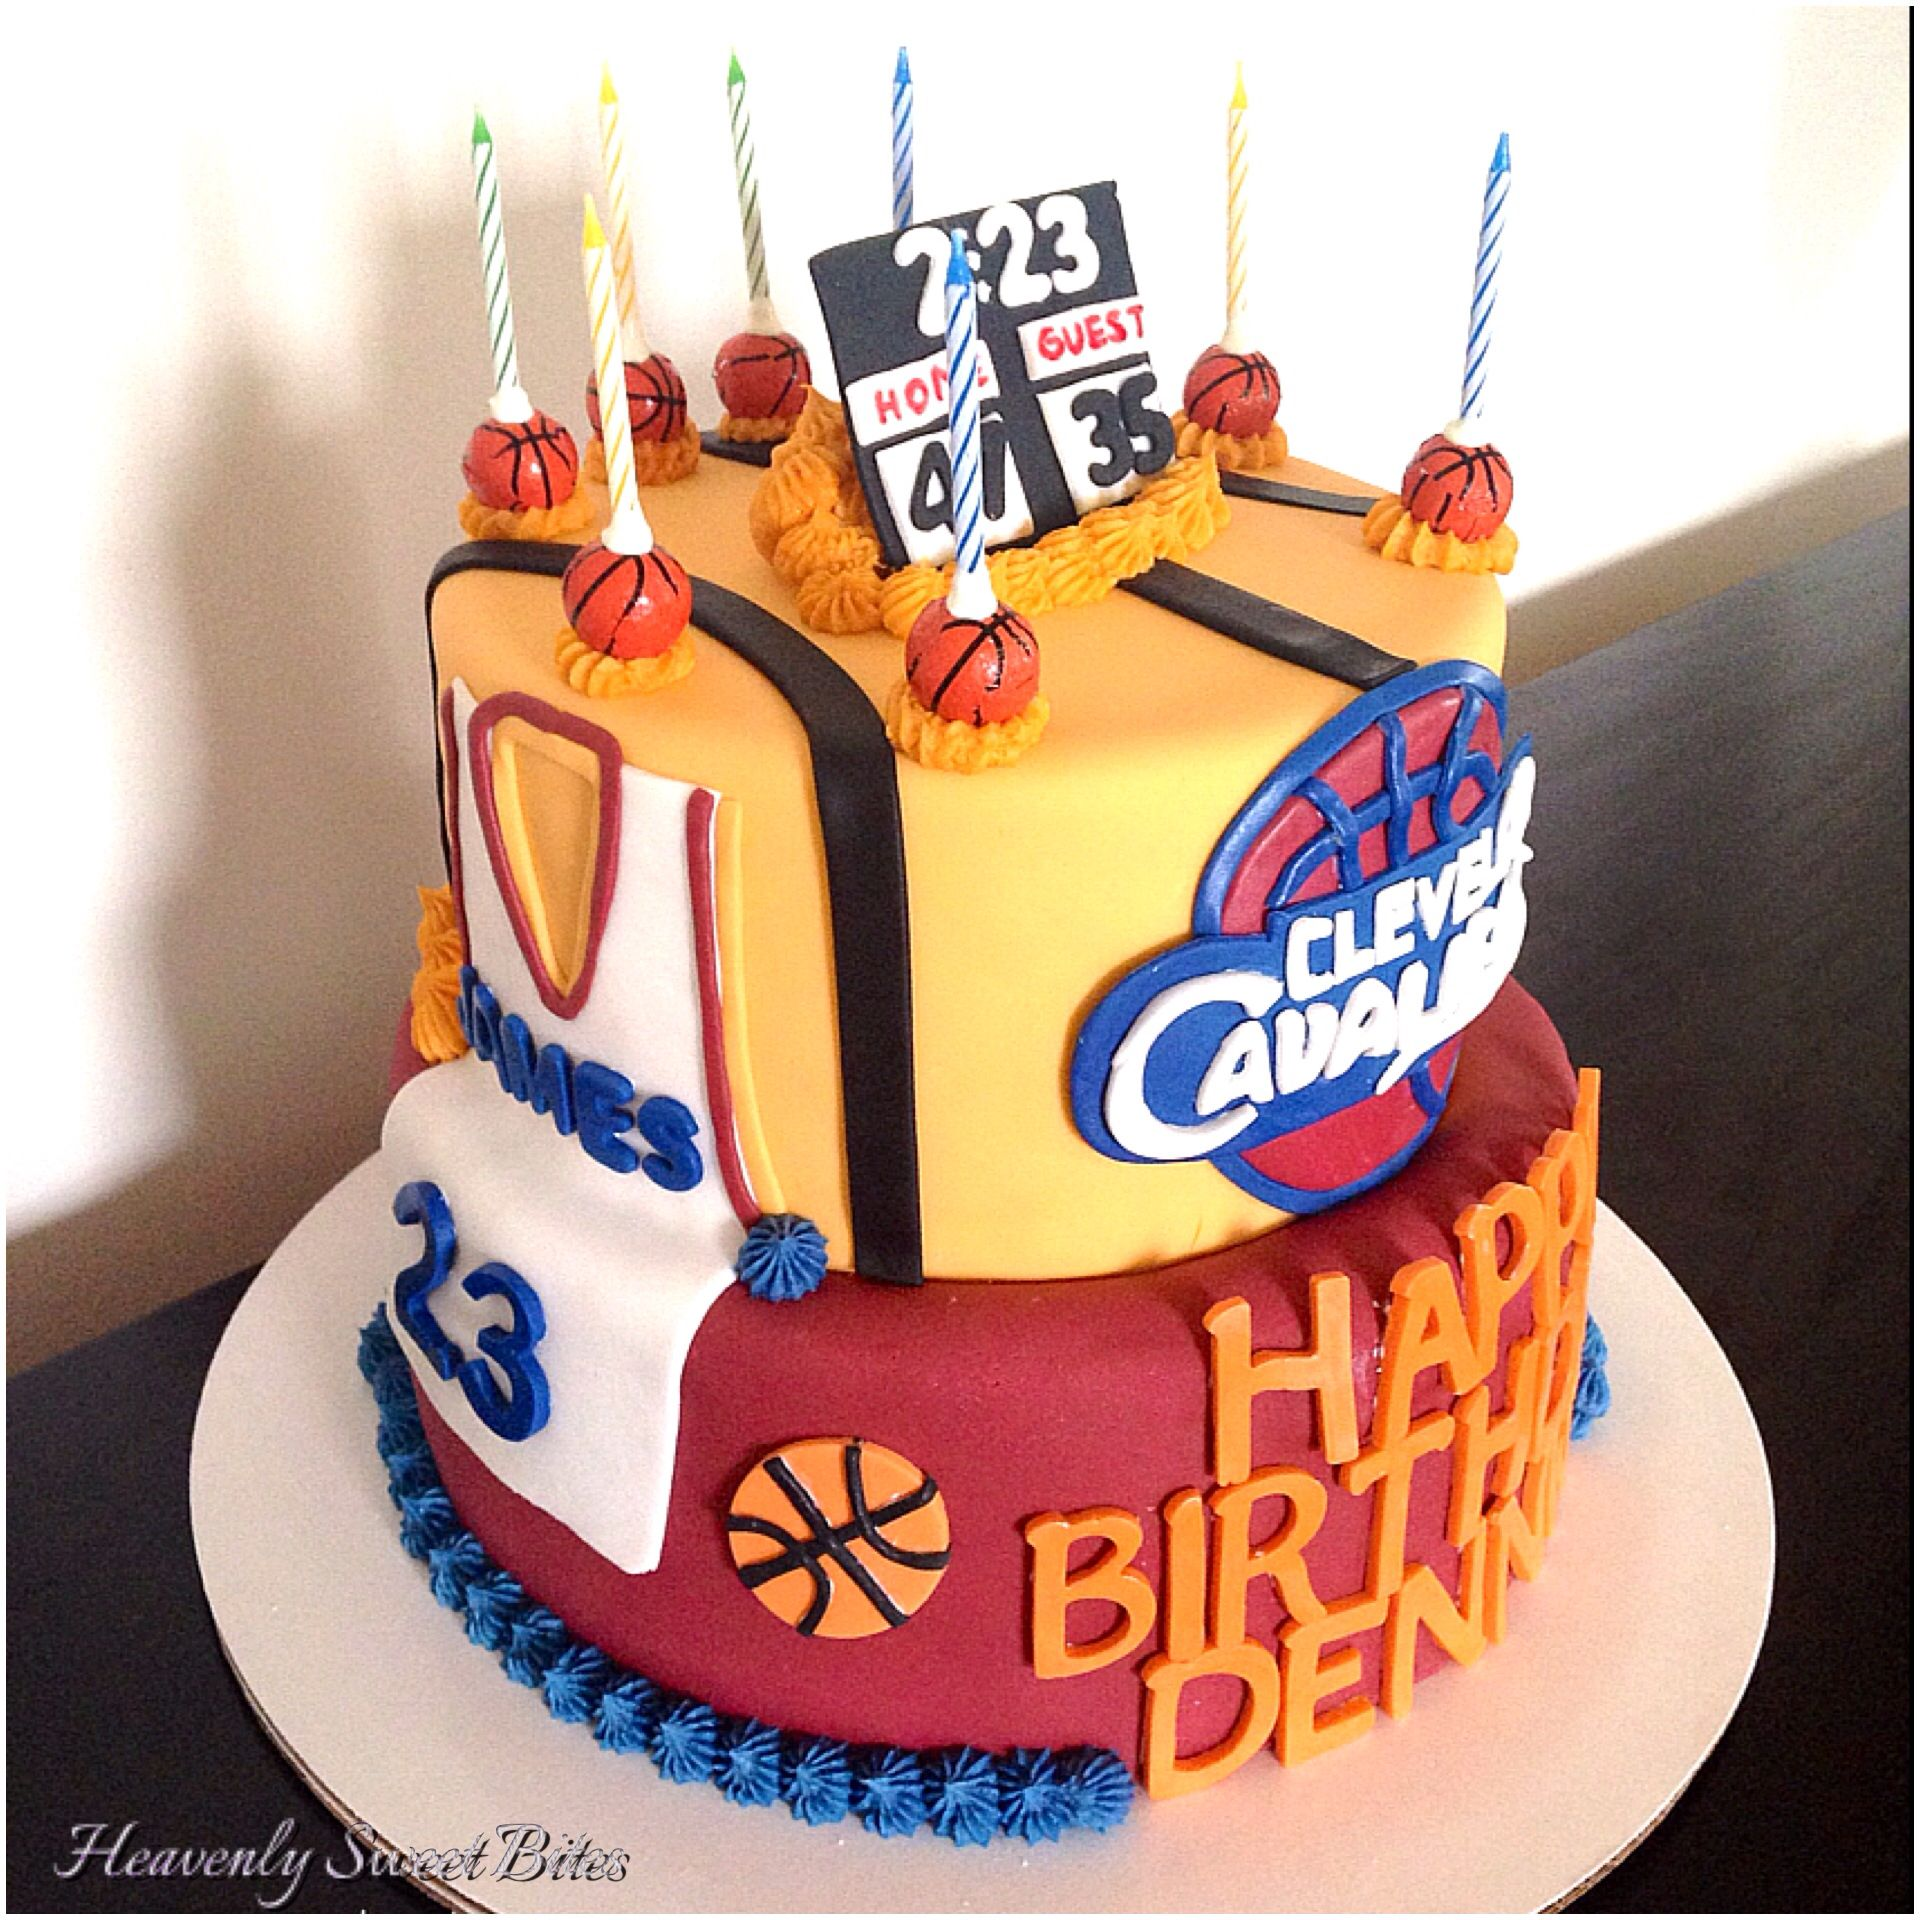 Cleveland Cavaliers Cake By Heavenly Sweet Bites In Mays Landing, NJ. Vanilla Cake With Fondant